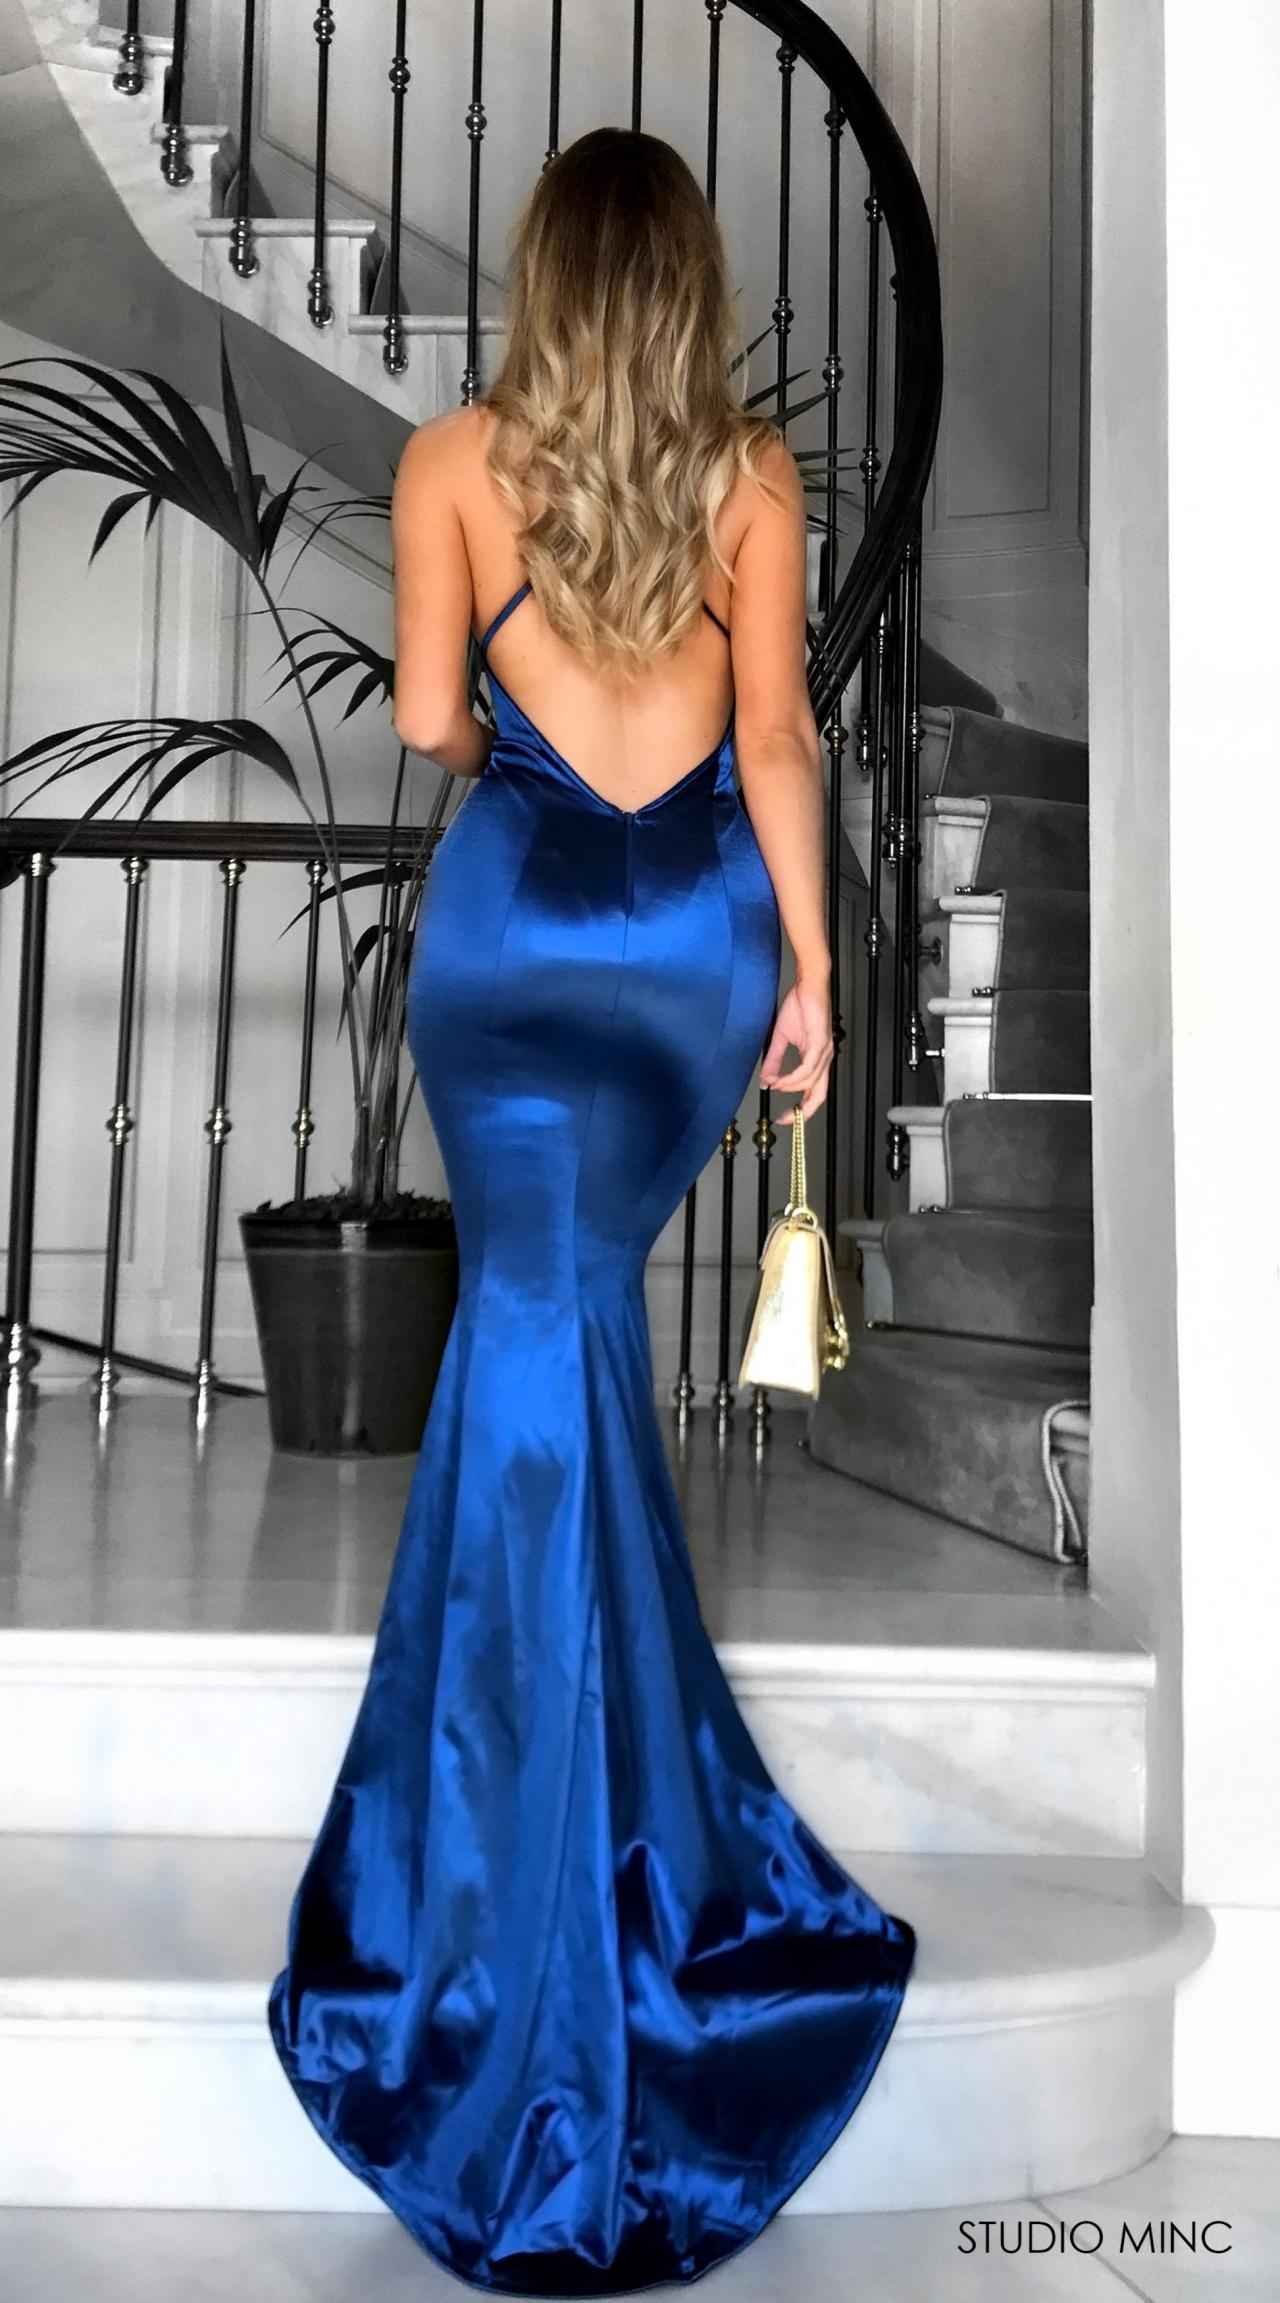 2018 New Mermaid Prom Dresses,Shirt Dress ,V-Neck Prom Dress,Party ...